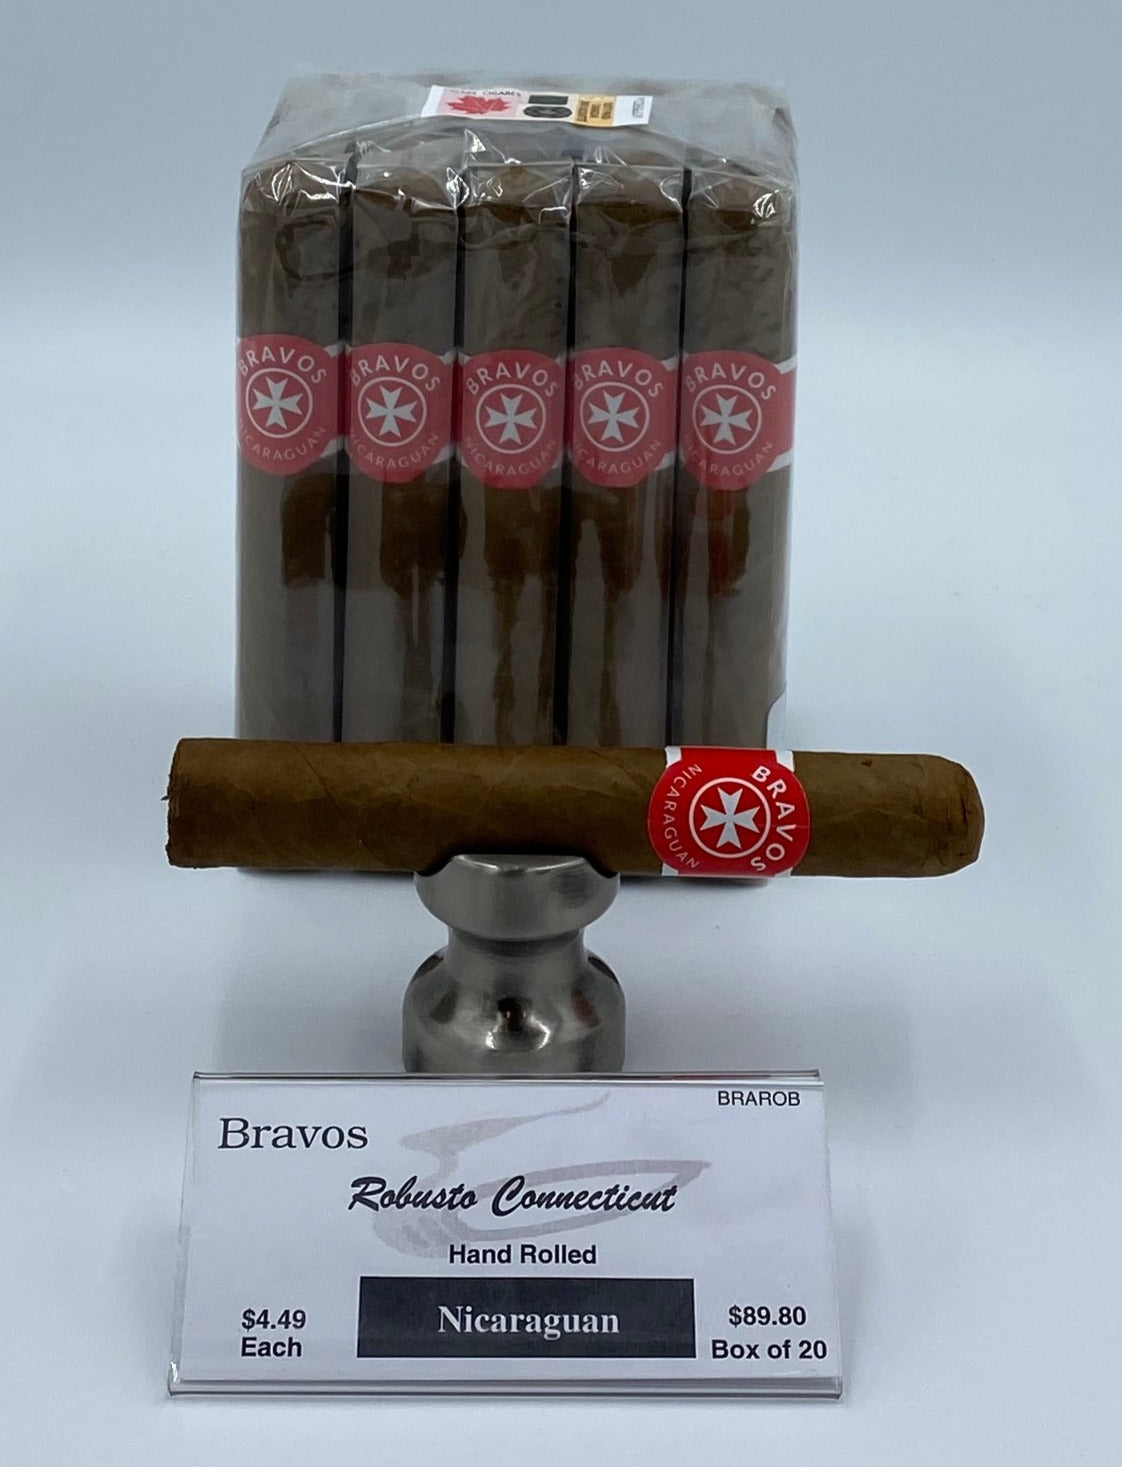 A BUNDLE OF 20 Bravos Robusto Connecticut...SAVE 10%....Sorry NOT eligible for FREE mail order shipping,Free Local Home Delivery available.